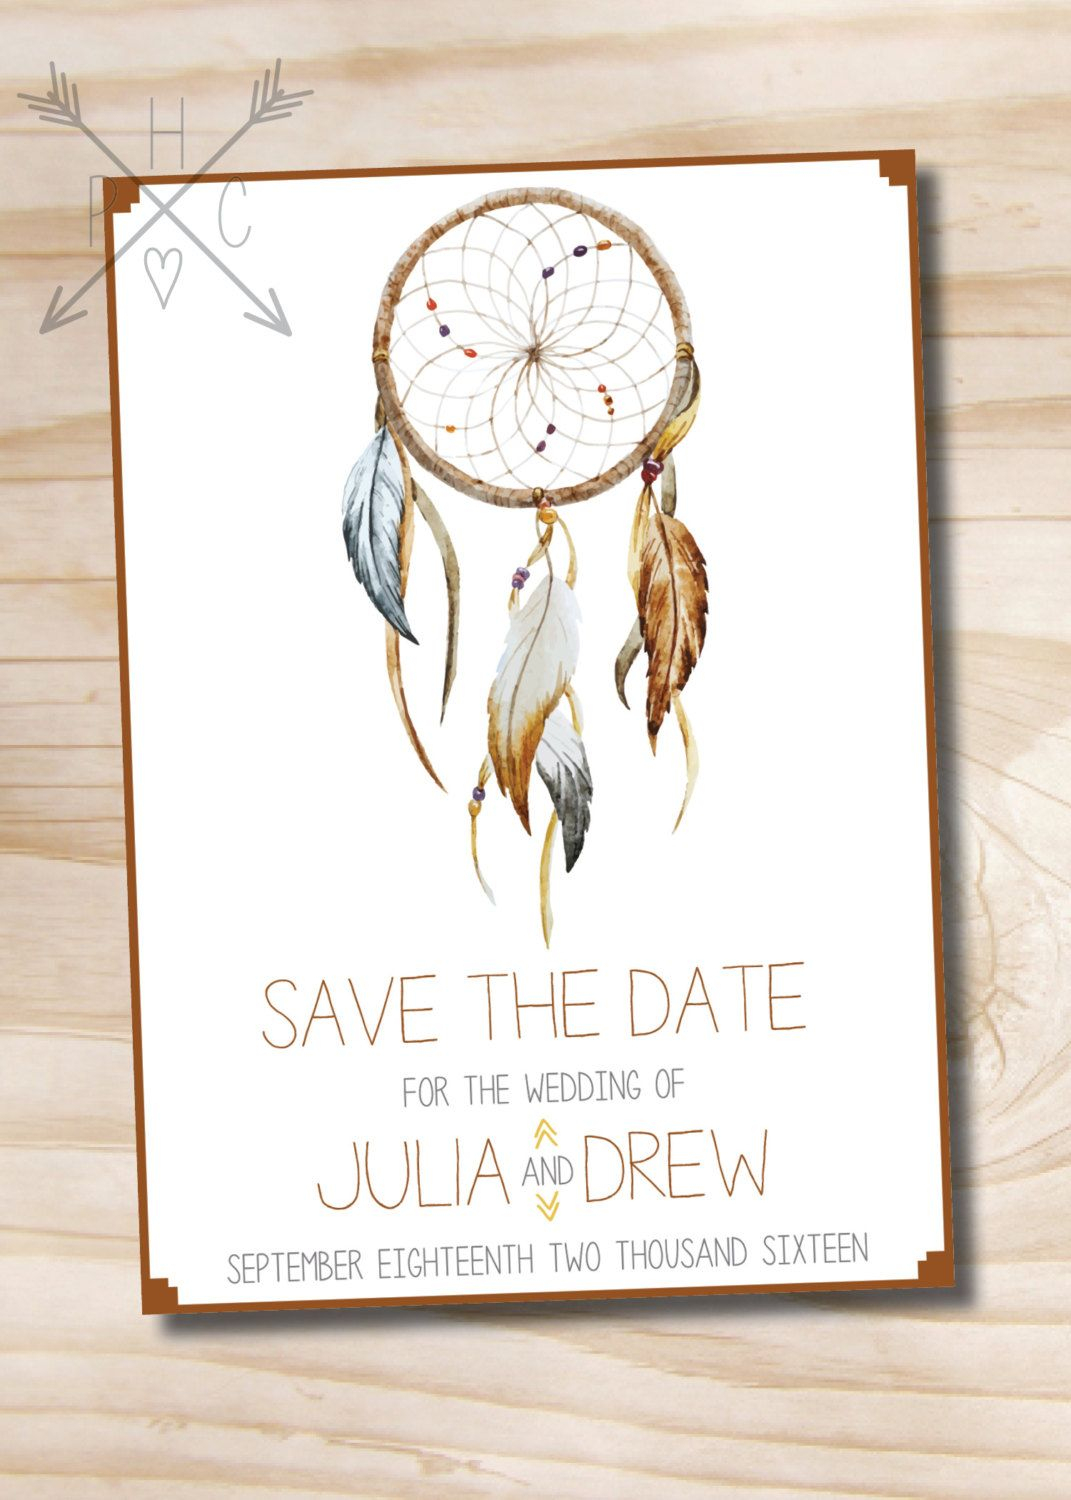 Boho Dreamcatcher Save The Date - Printable Digital File Or Printed - Free Printable Save The Date Birthday Invitations